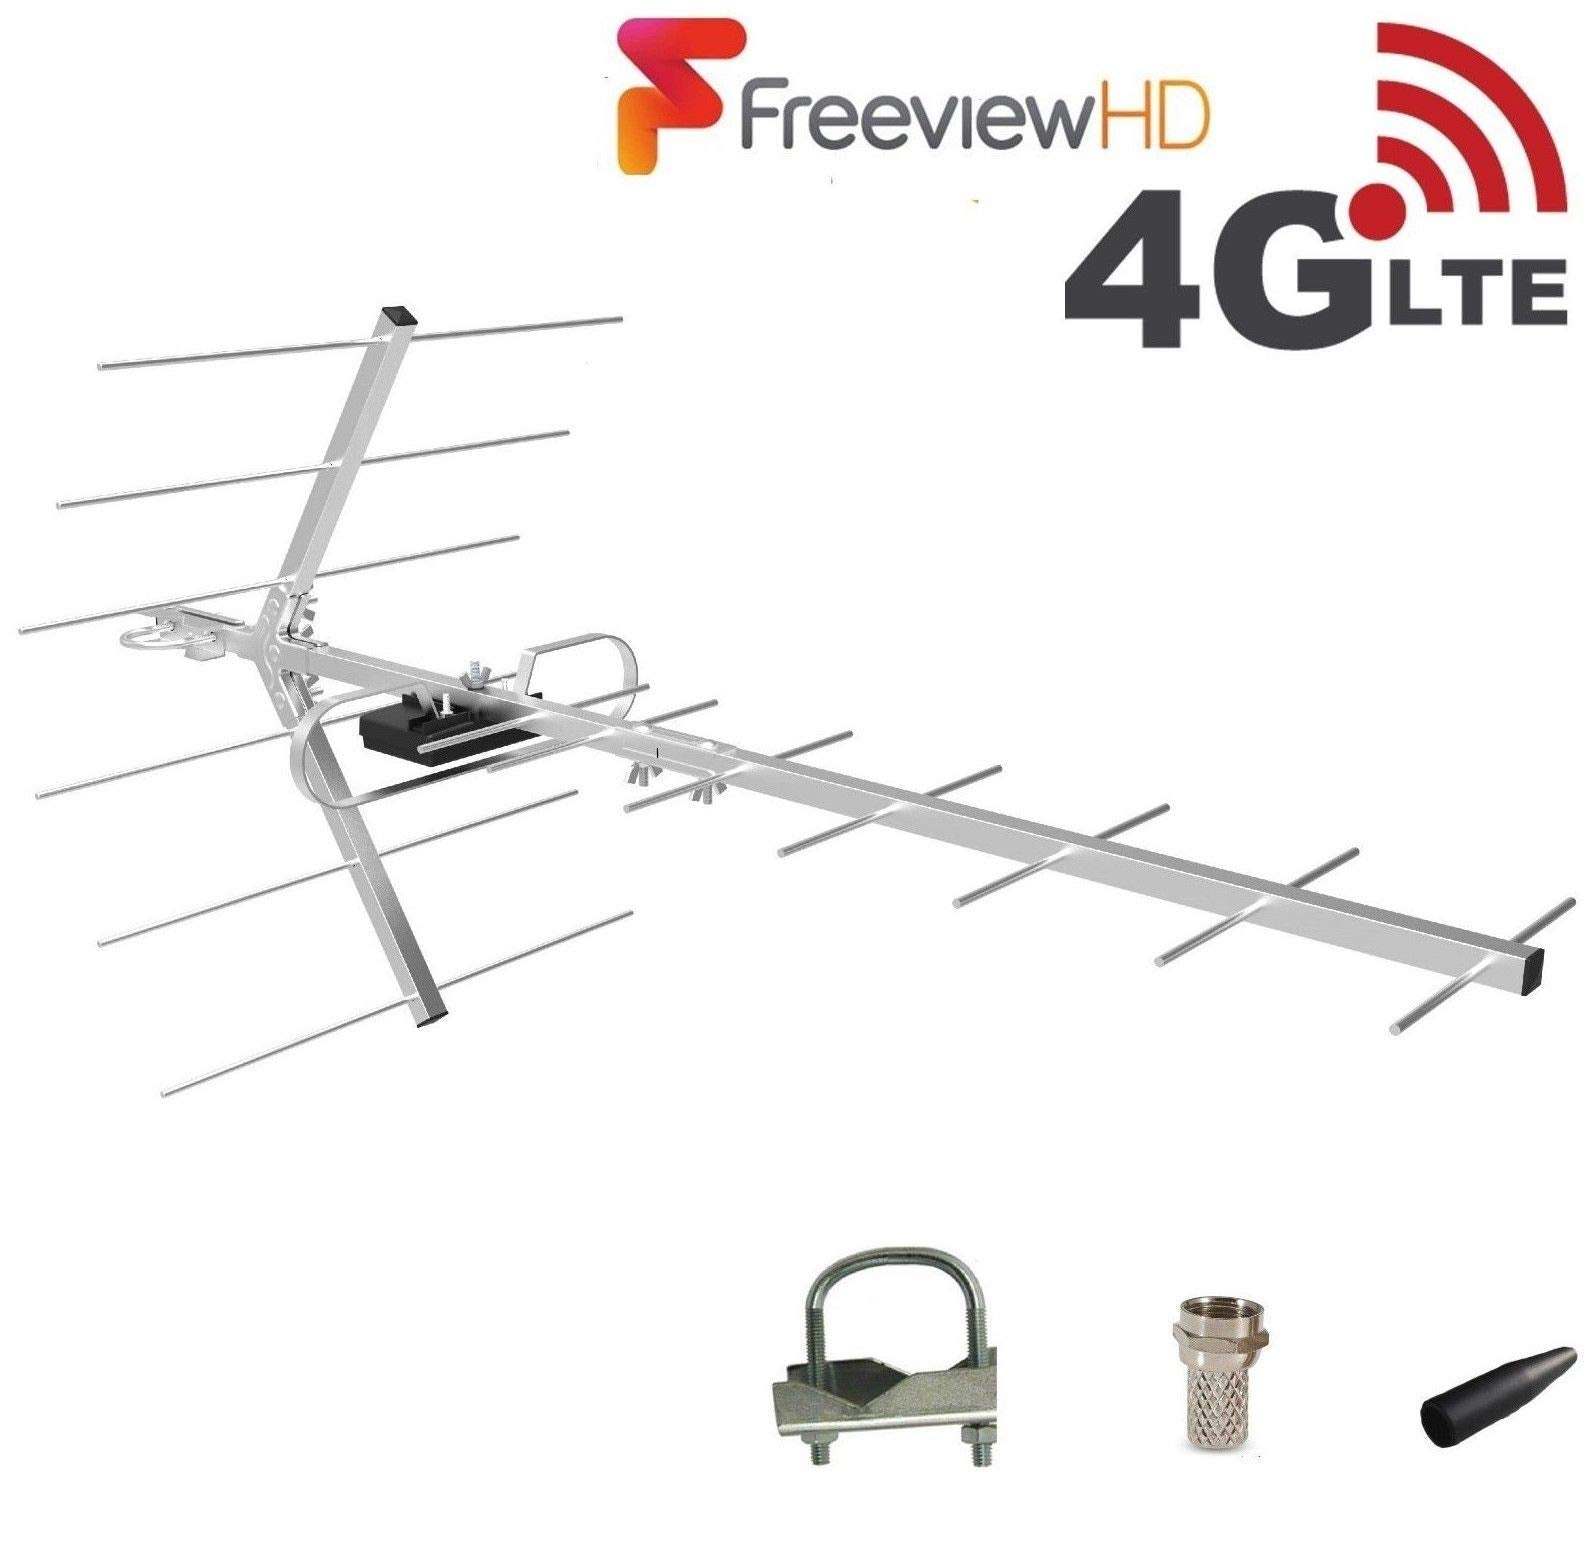 Digital TV Aerial 26 Element HD Freeview loft / outdoor ariel arial antenna 4G